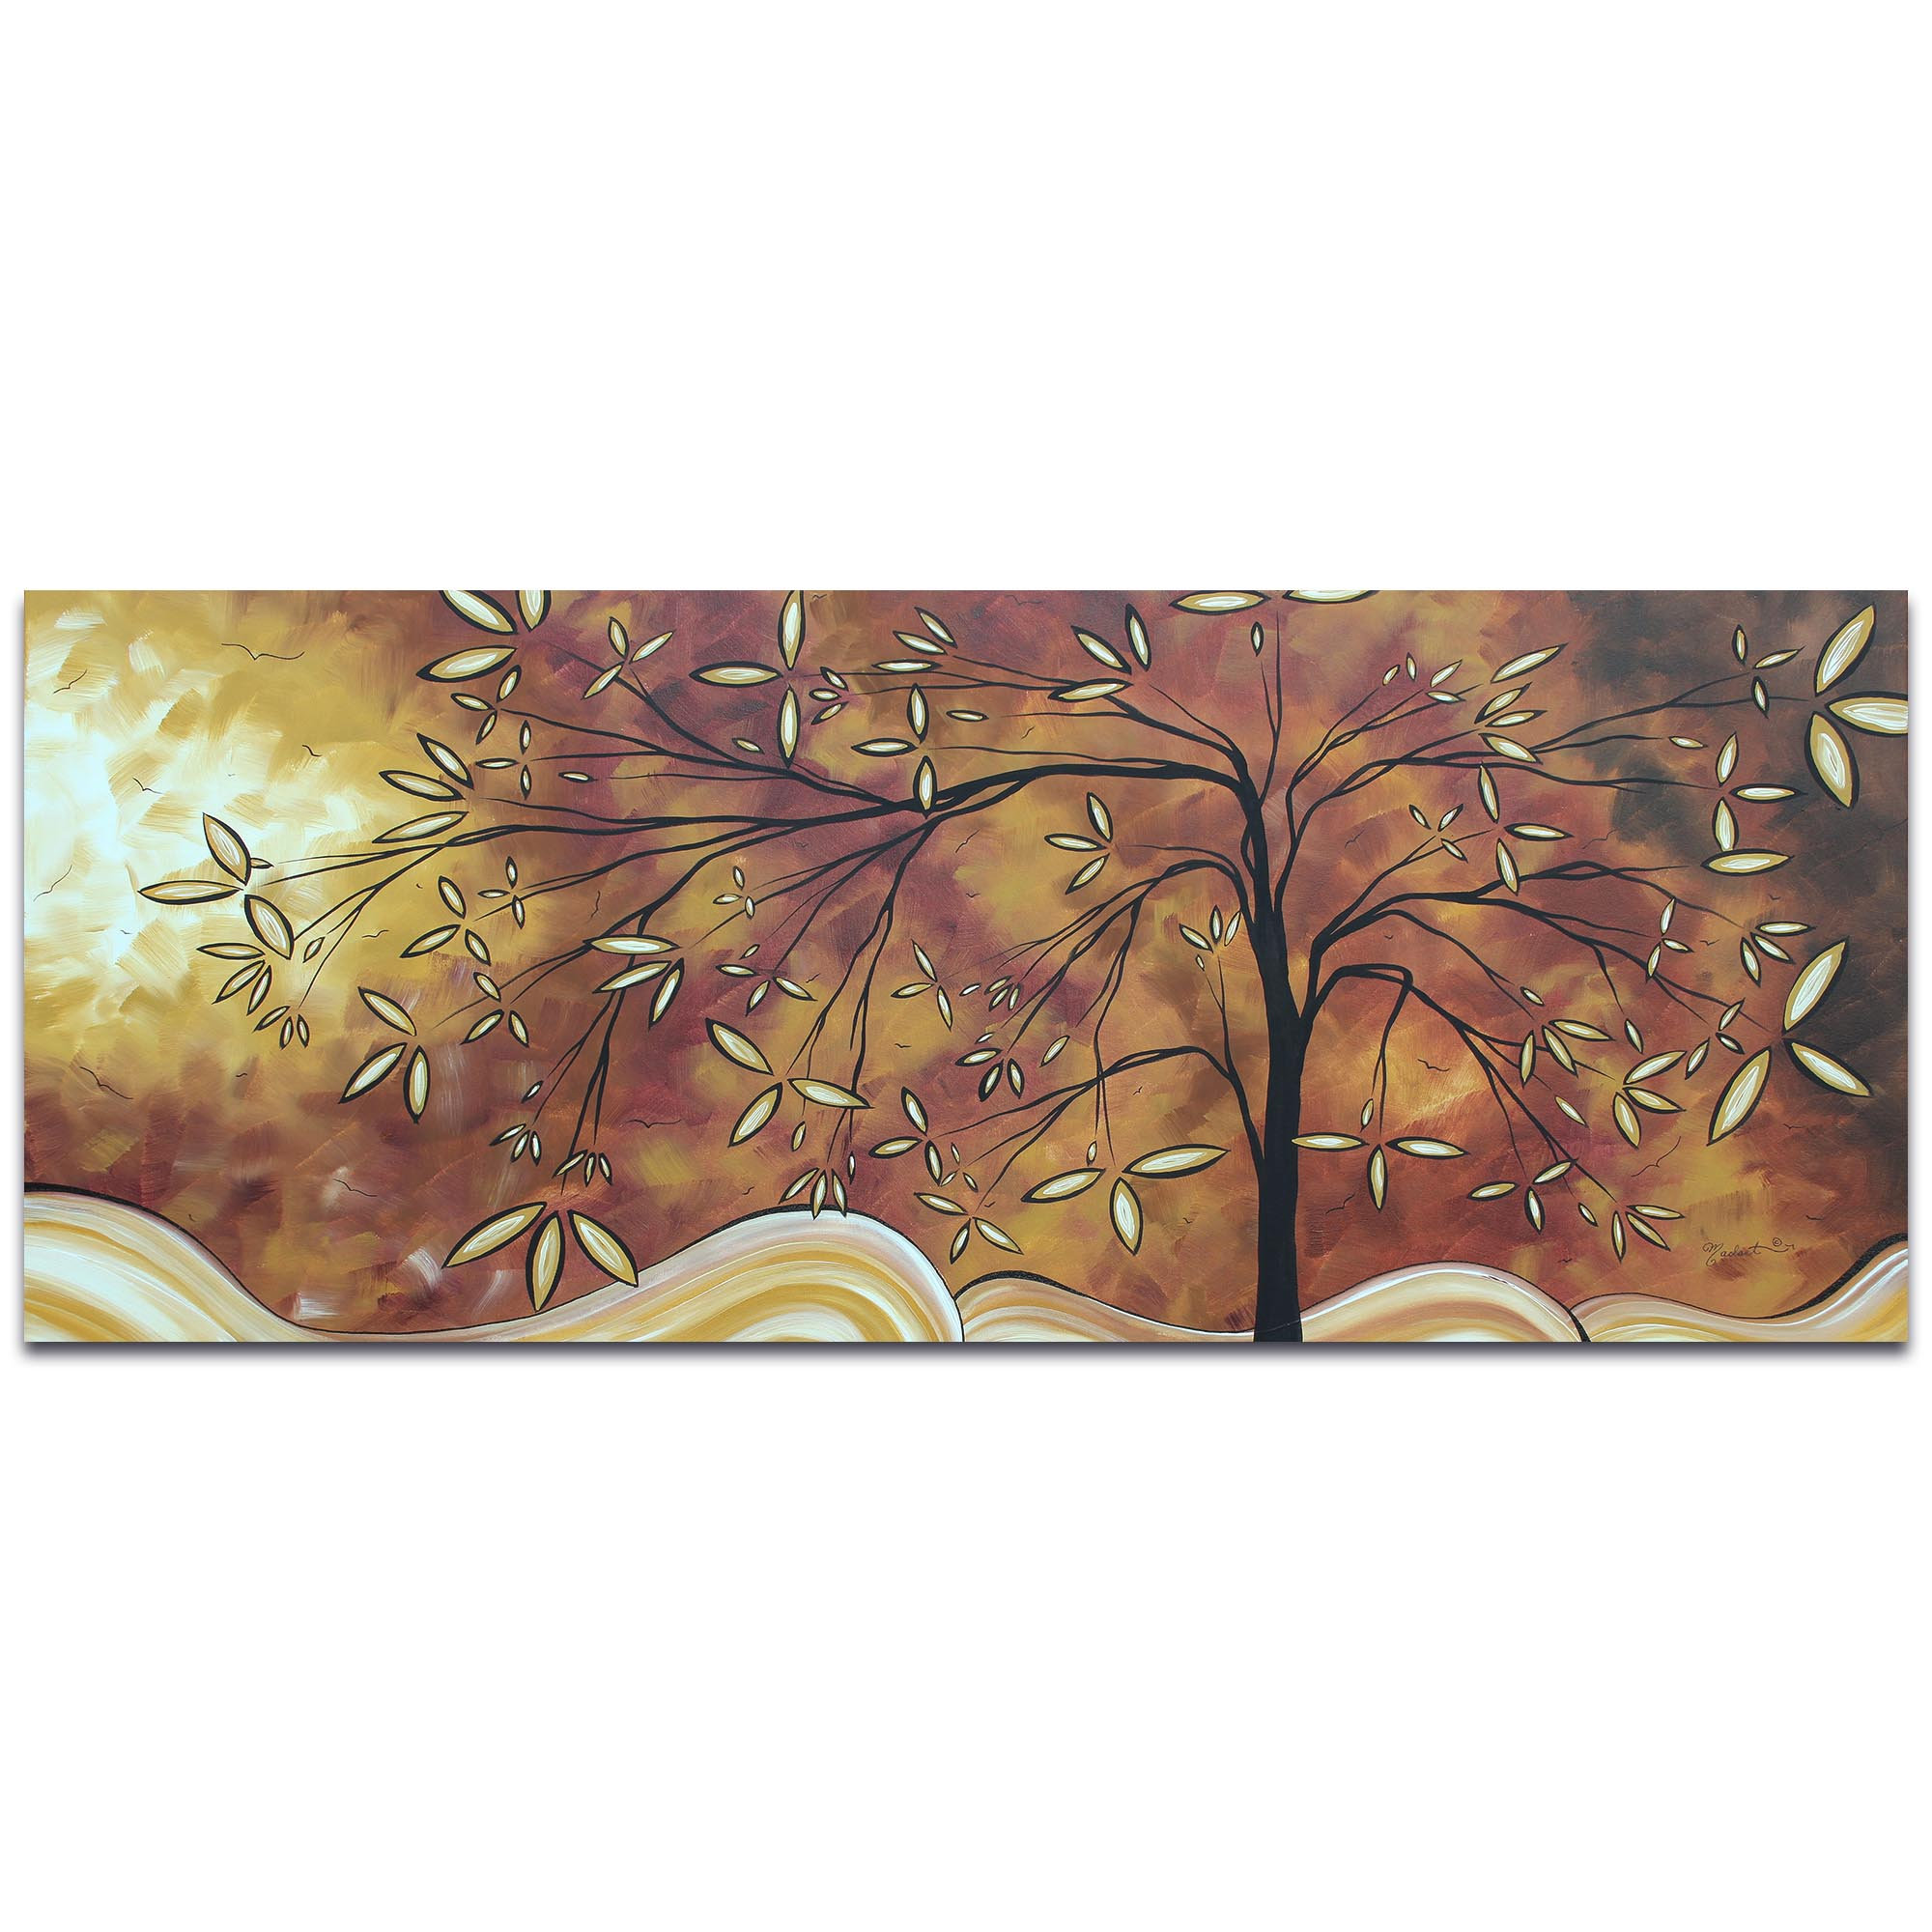 Landscape Painting 'The Wishing Tree' - Abstract Tree Art on Metal or Acrylic